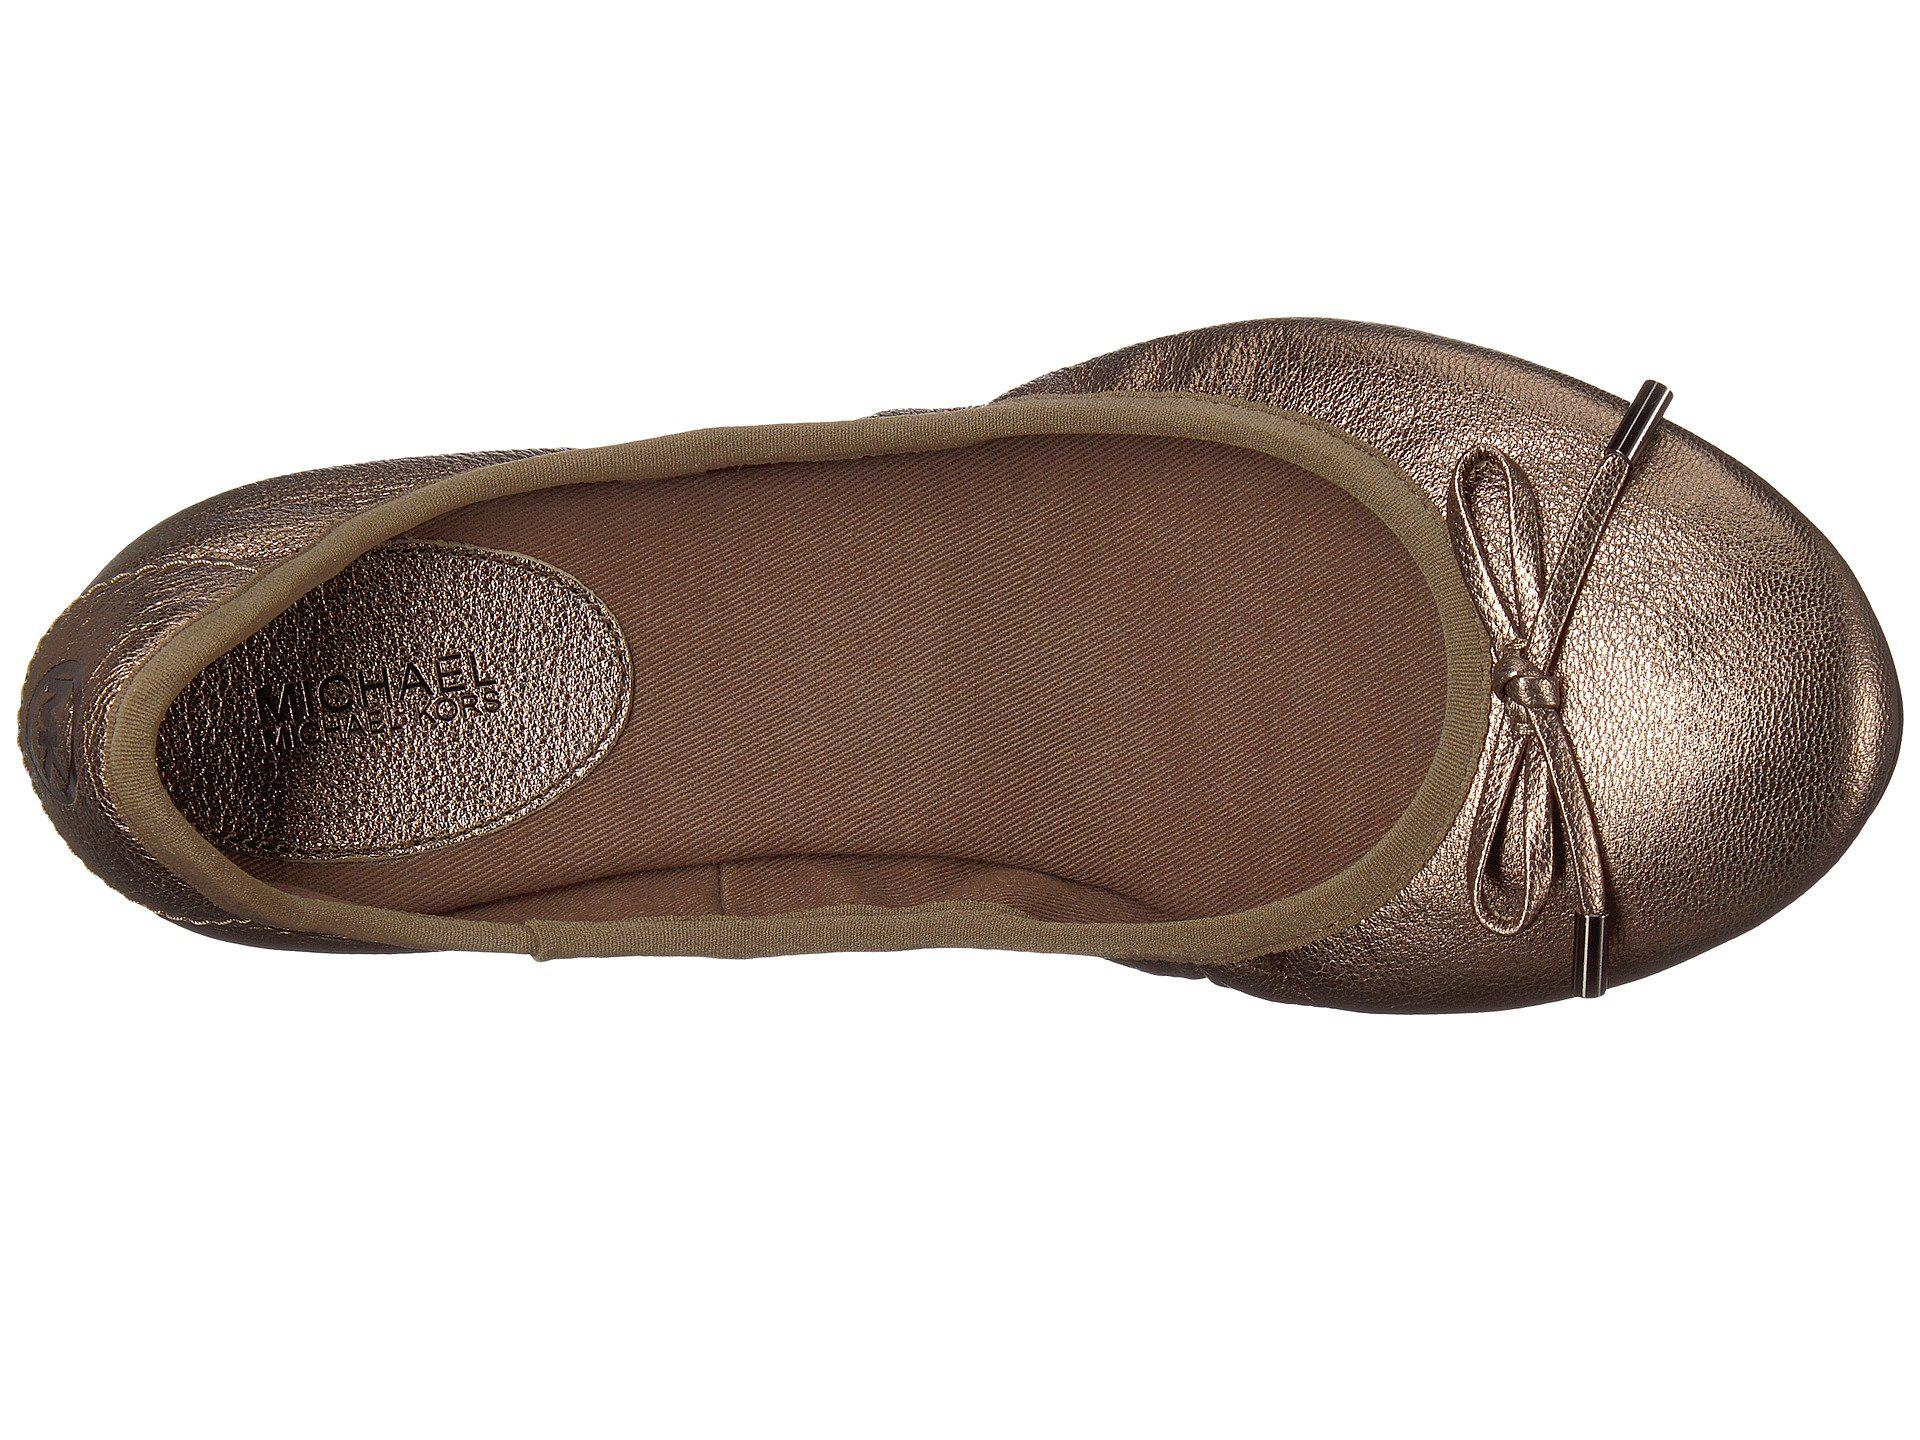 7b14a5c0977d Lyst - MICHAEL Michael Kors Mk City Ballet in Brown